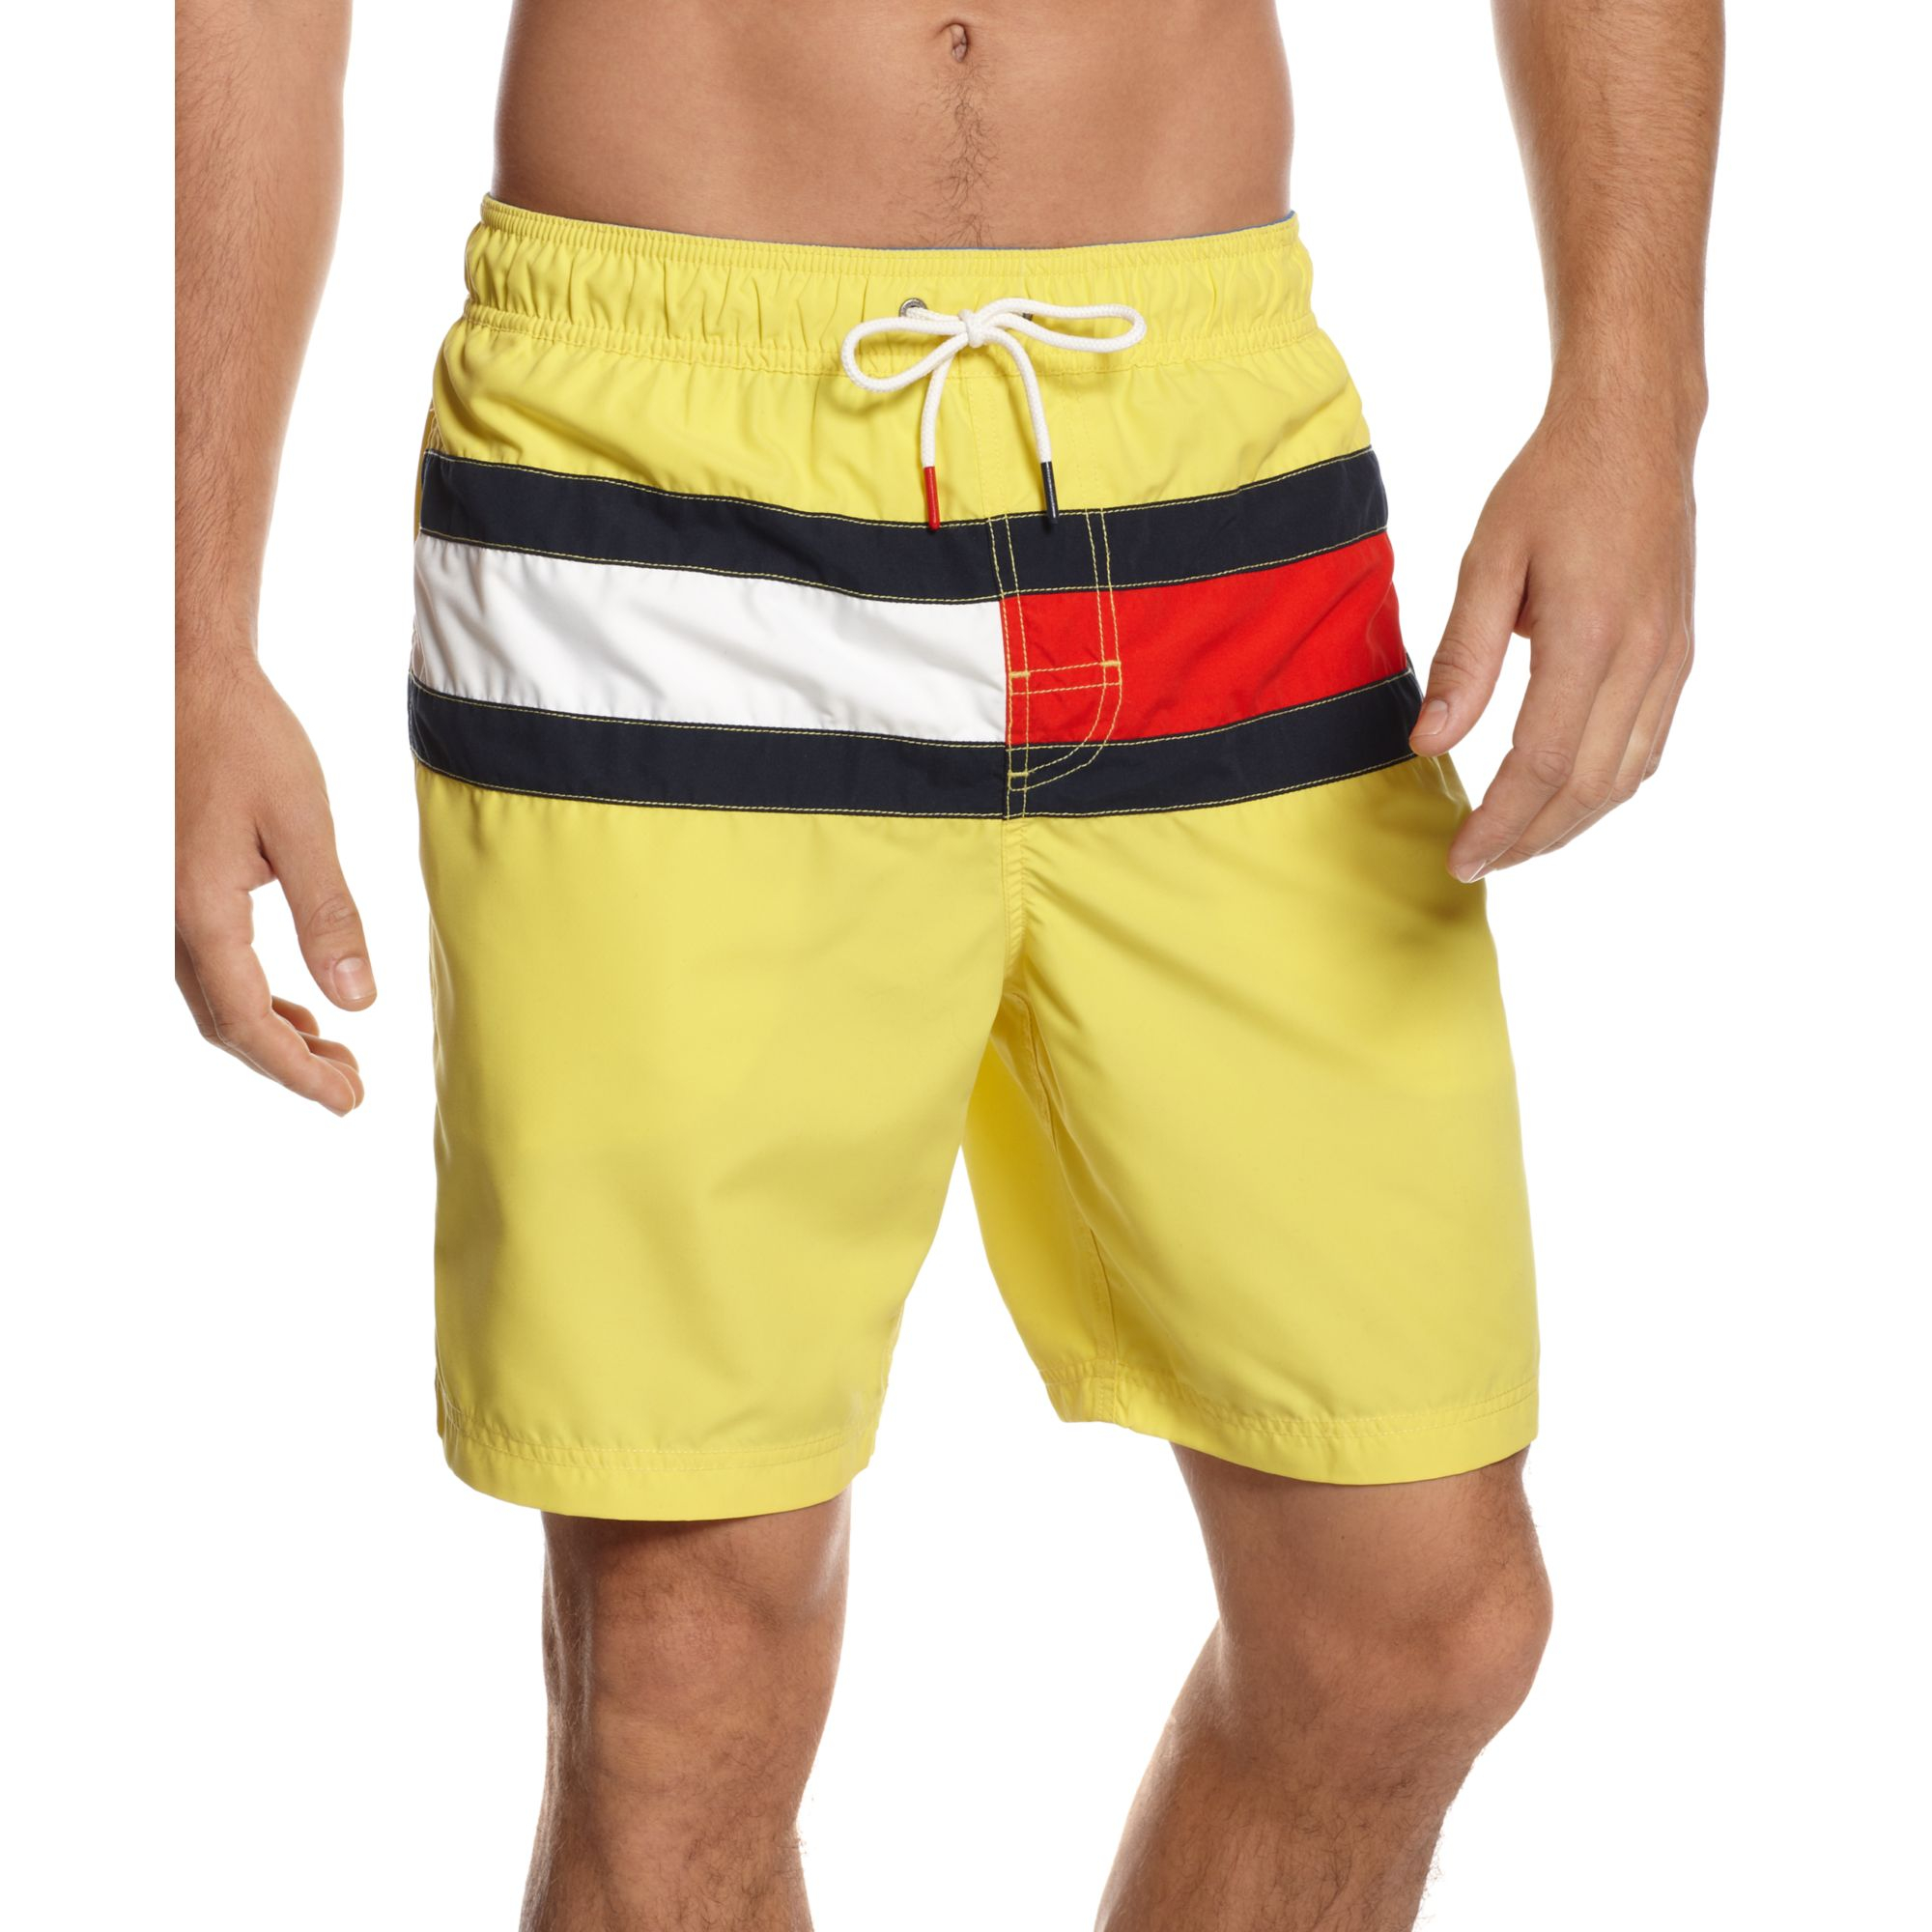 db16ded4bd649 Tommy Hilfiger Flag It Swim Trunks in Yellow for Men - Lyst